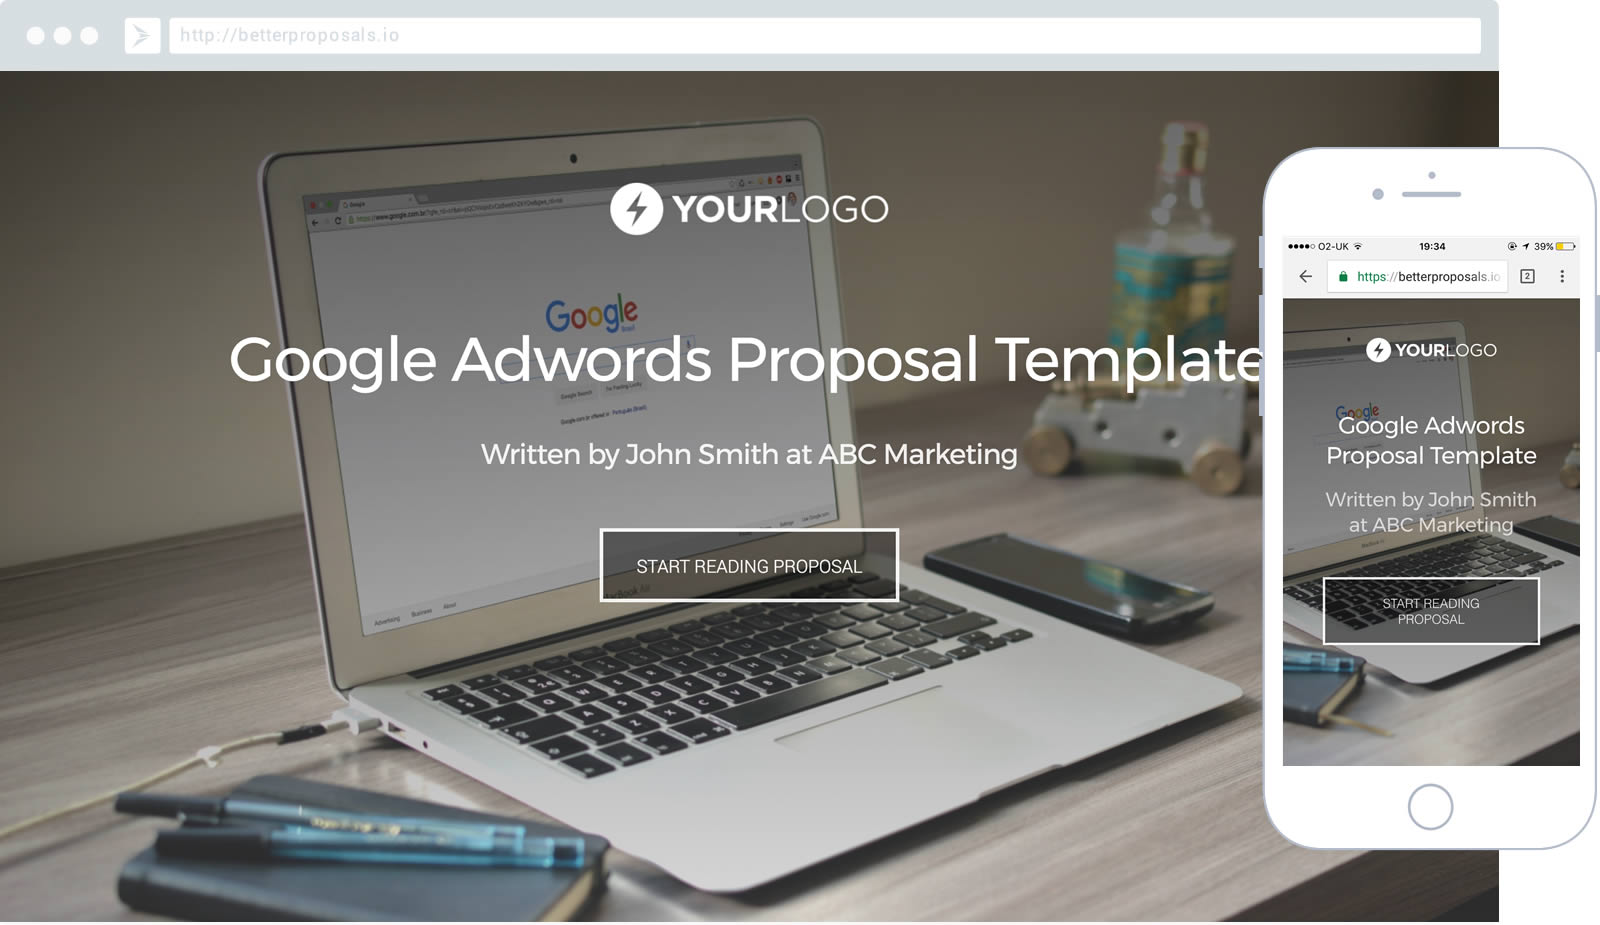 Free Landing Page Design Proposal Template - Better Proposals